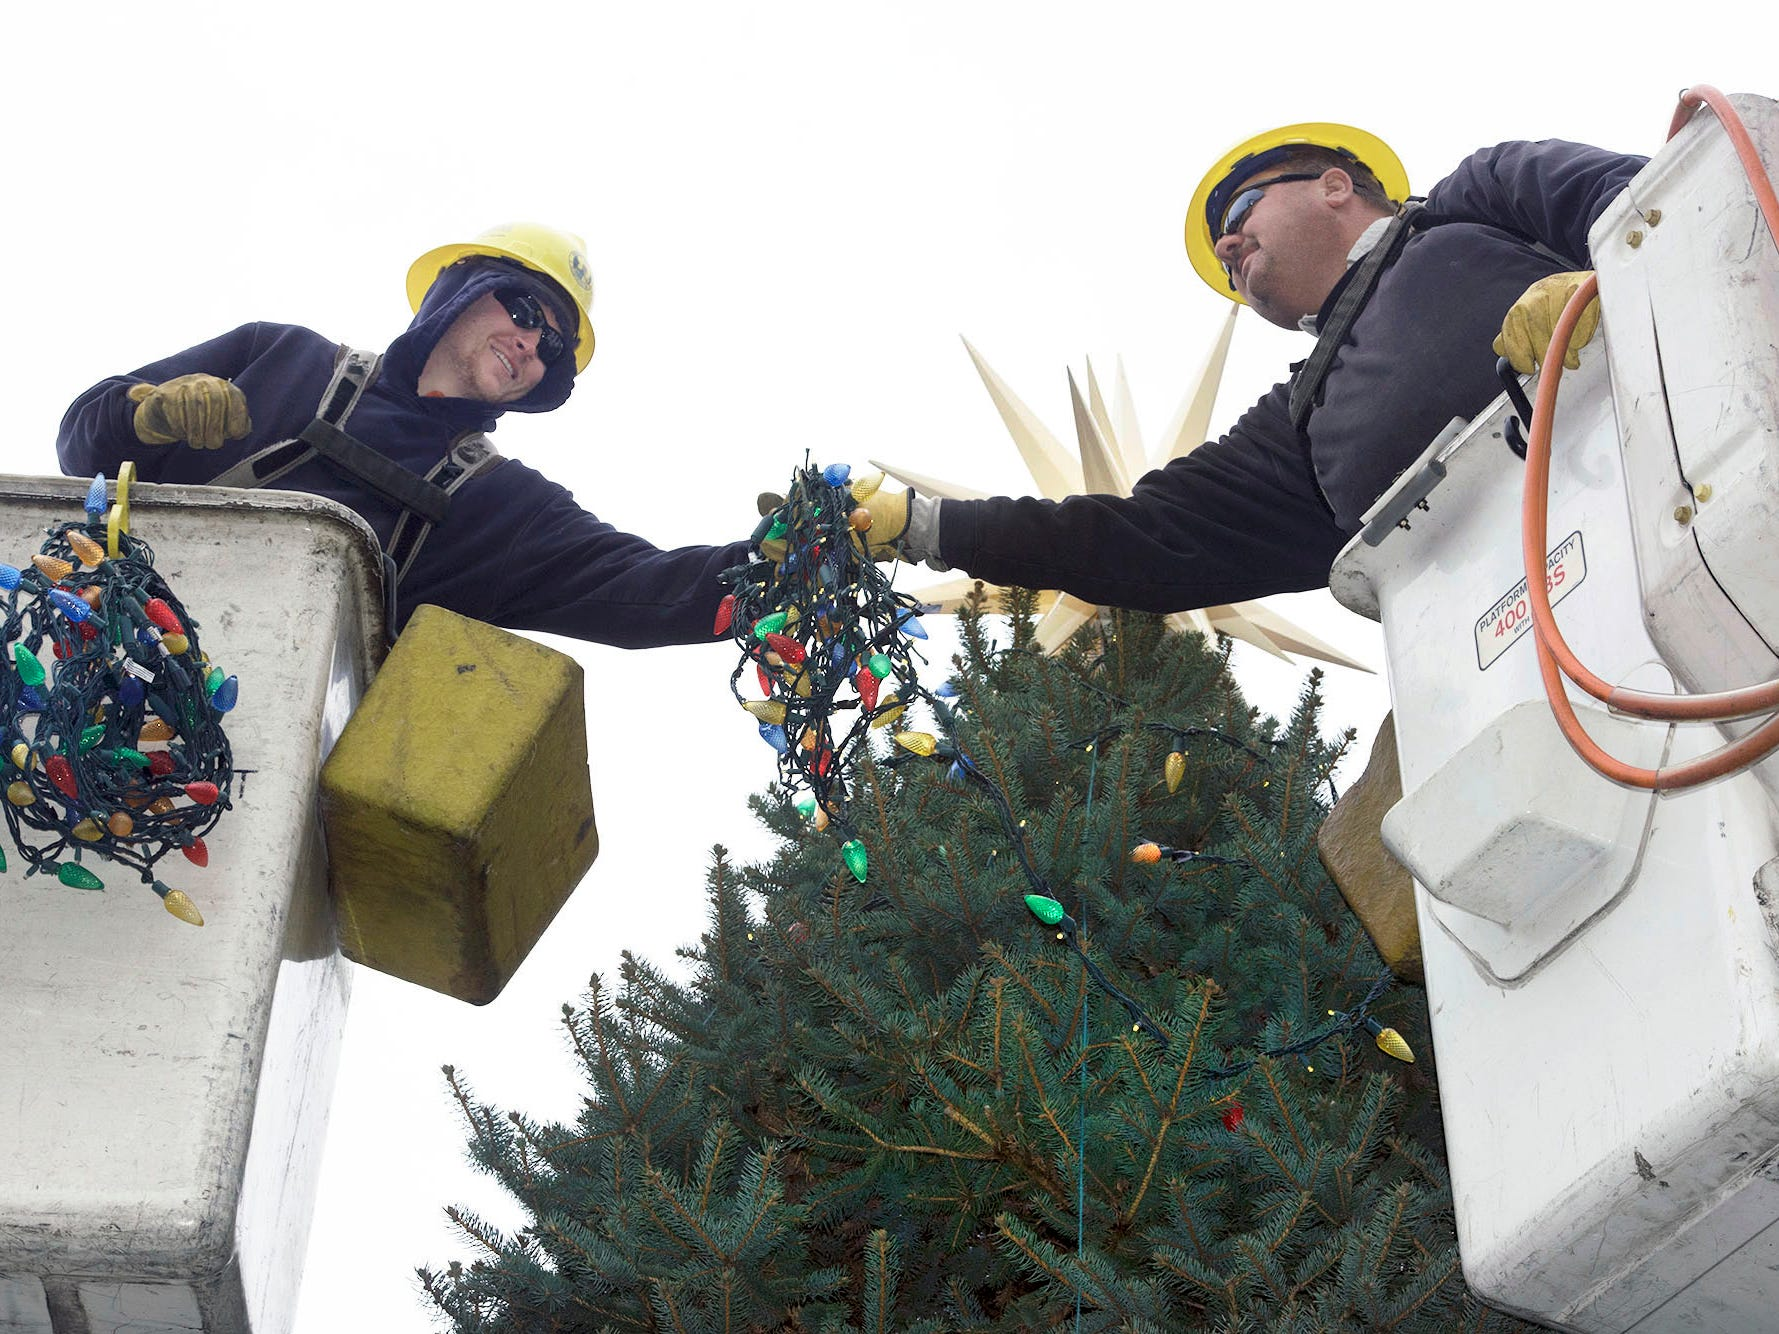 Borough of Chambersburg lineman Josh Swartz and Rob Roberts string lights on the Christmas tree at Memorial Square on Tuesday, November 13, 2018. This year's tree was donated by Darlene Fowler of Fayetteville.